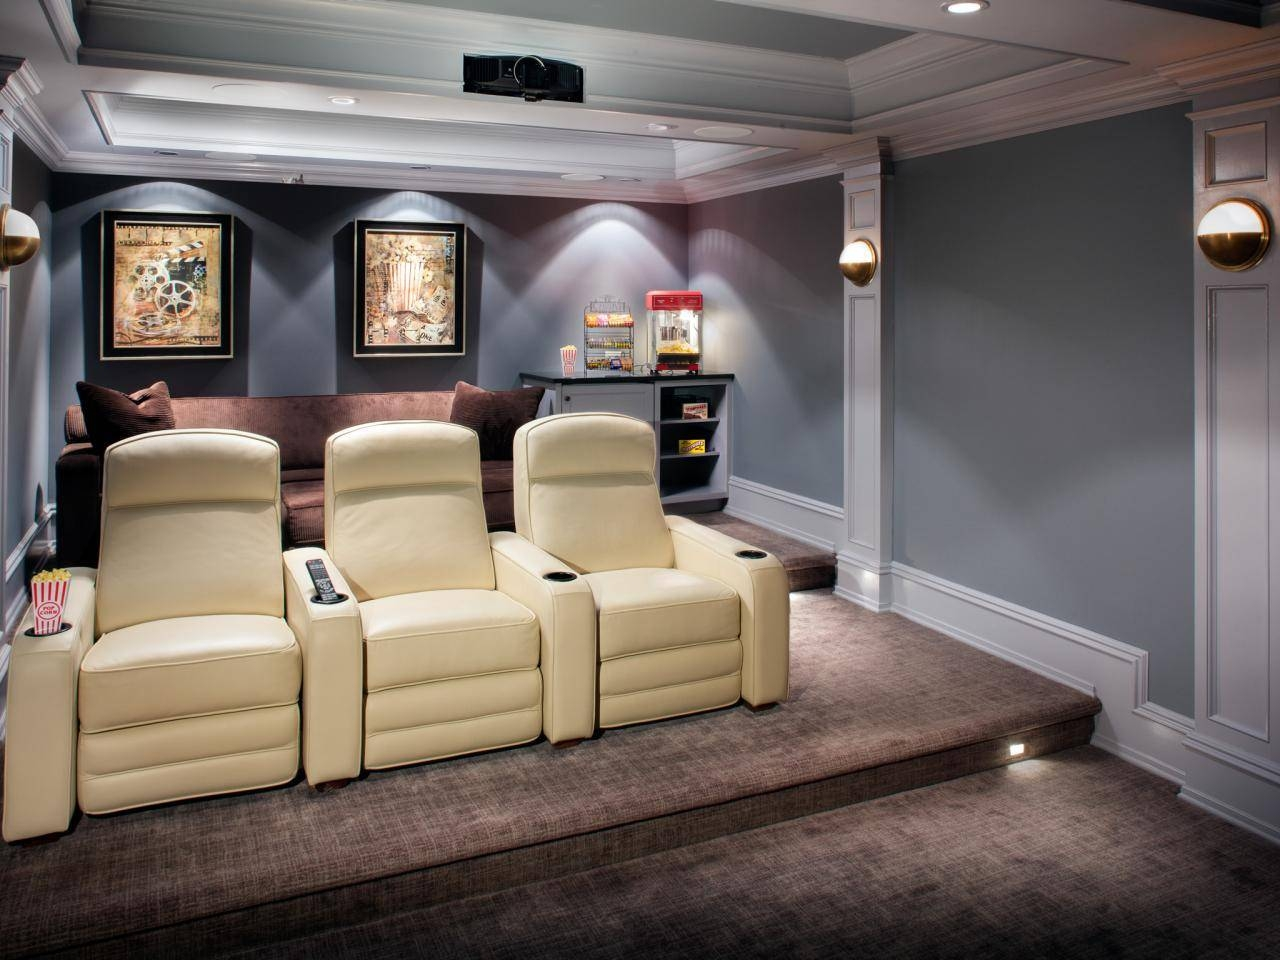 Flooring: Home Theatre With Reclining Chairs And Wall Art Also Throughout Newest Home Theater Wall Art (View 10 of 30)